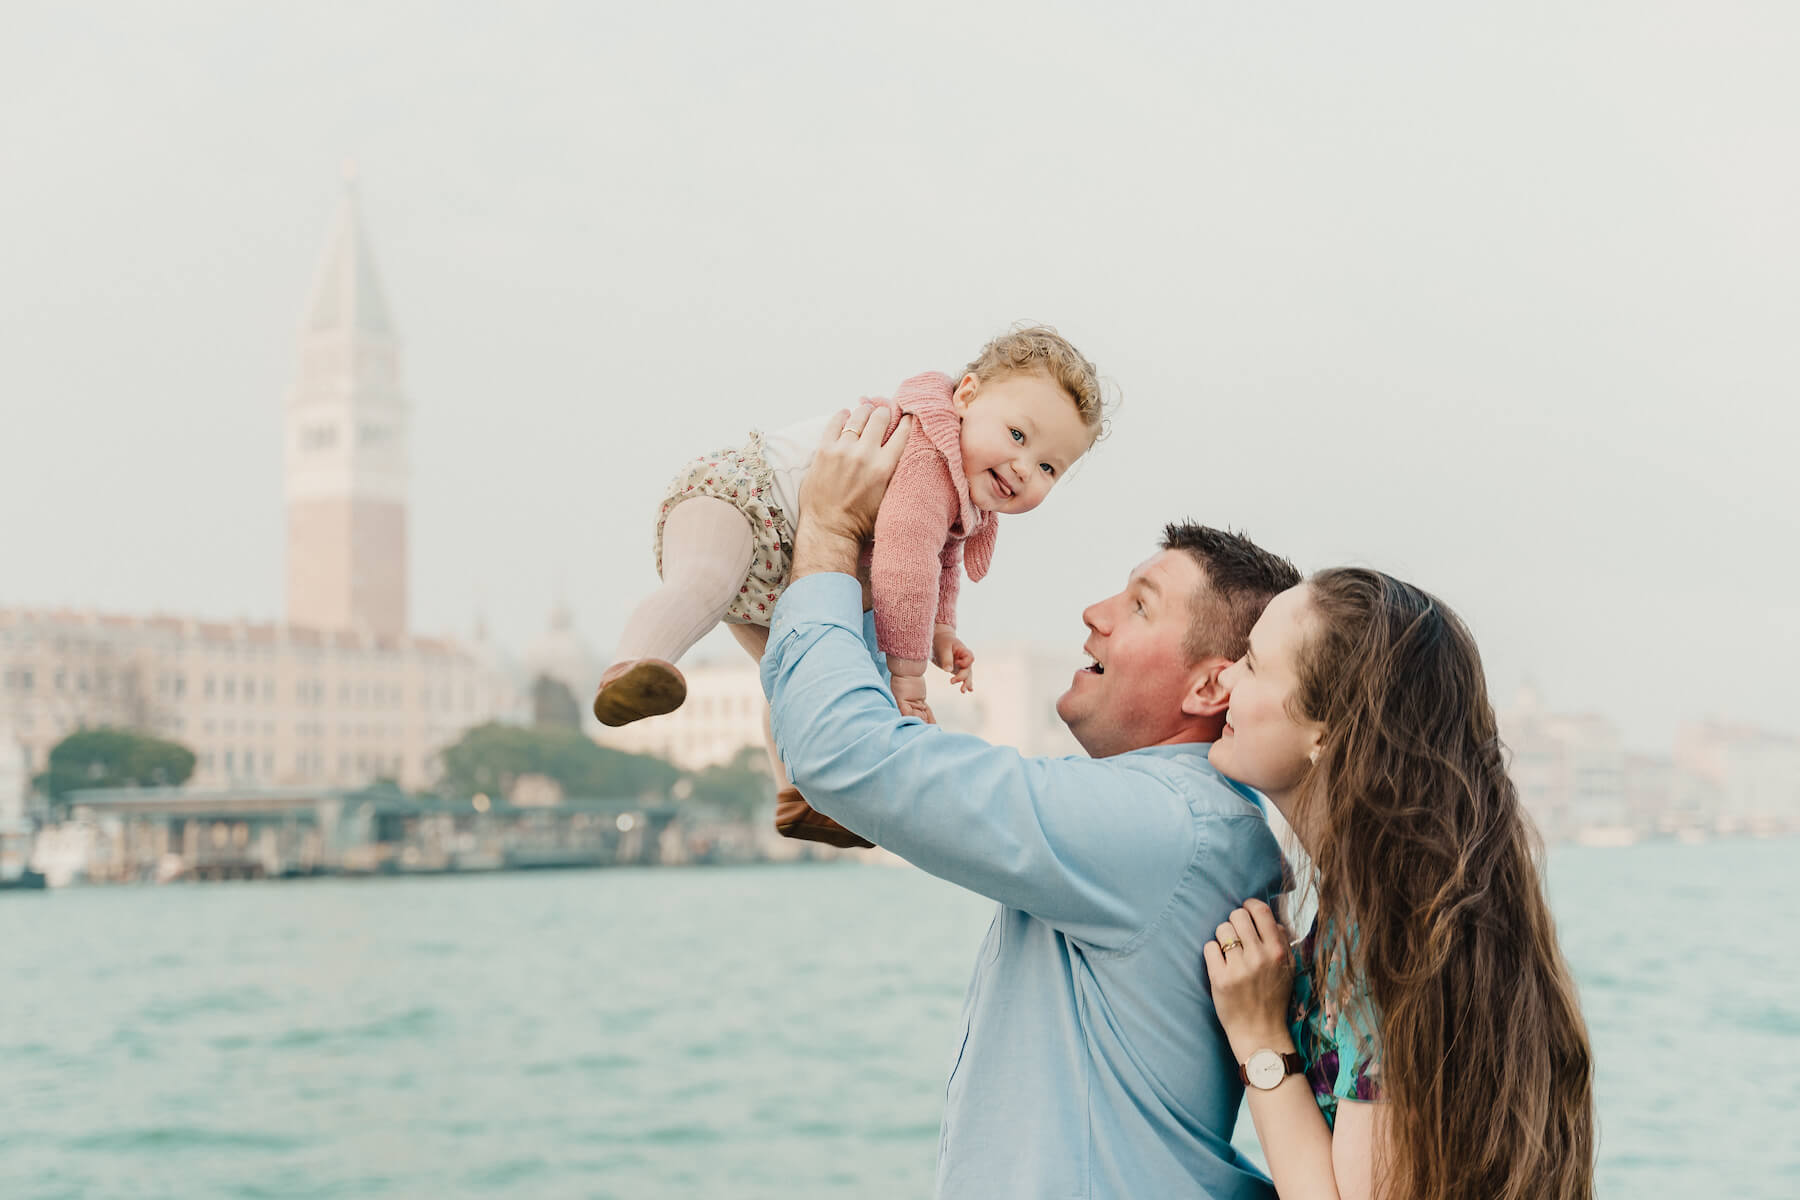 a family of three, the man is holding the baby up in the air with Venice canal in the background in Venice, Italy